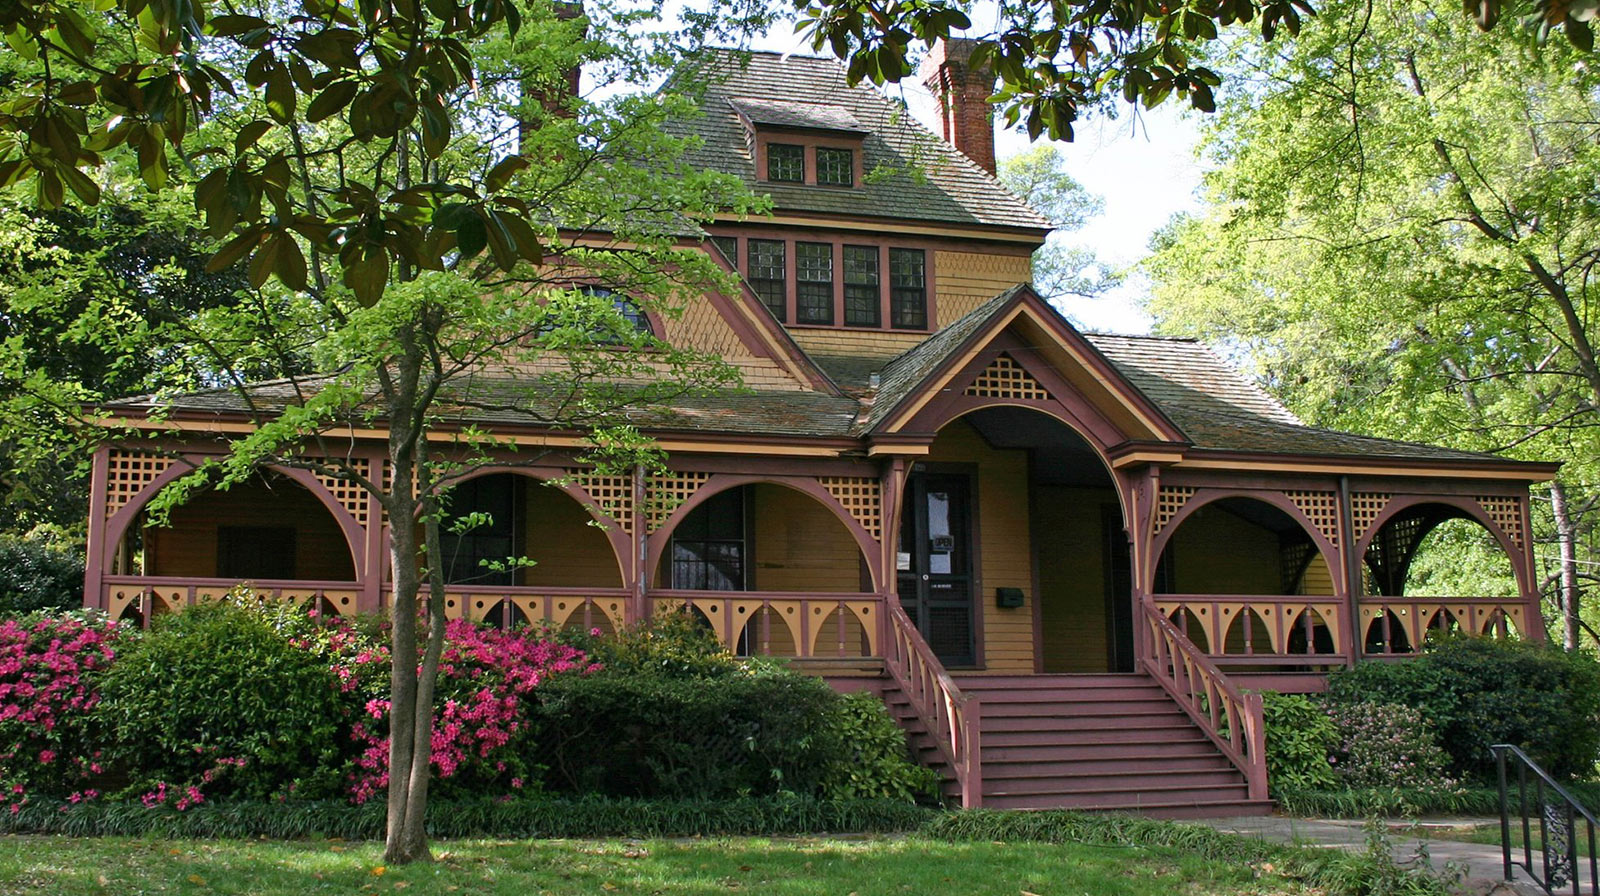 Wren's Nest House Museum   1050 Ralph David Abernathy Blvd. SW, Atlanta 404-753-7735  The 1881 National Historic Landmark home of Joel Chandler Harris, creator of Uncle Remus and chronicler of stories about Br'er Rabbit. Original Harris family furnishings, books, photographs and memorabilia. Guided tours and video.  Hours: Tuesday - Saturday 10:30 am - 2:30 pm Closed Sunday and Monday.  Maximum of 30 people per day and you must specify age range, number of children and number of adults.  Minimum age: 5 years.  You MUST be on time for this venue